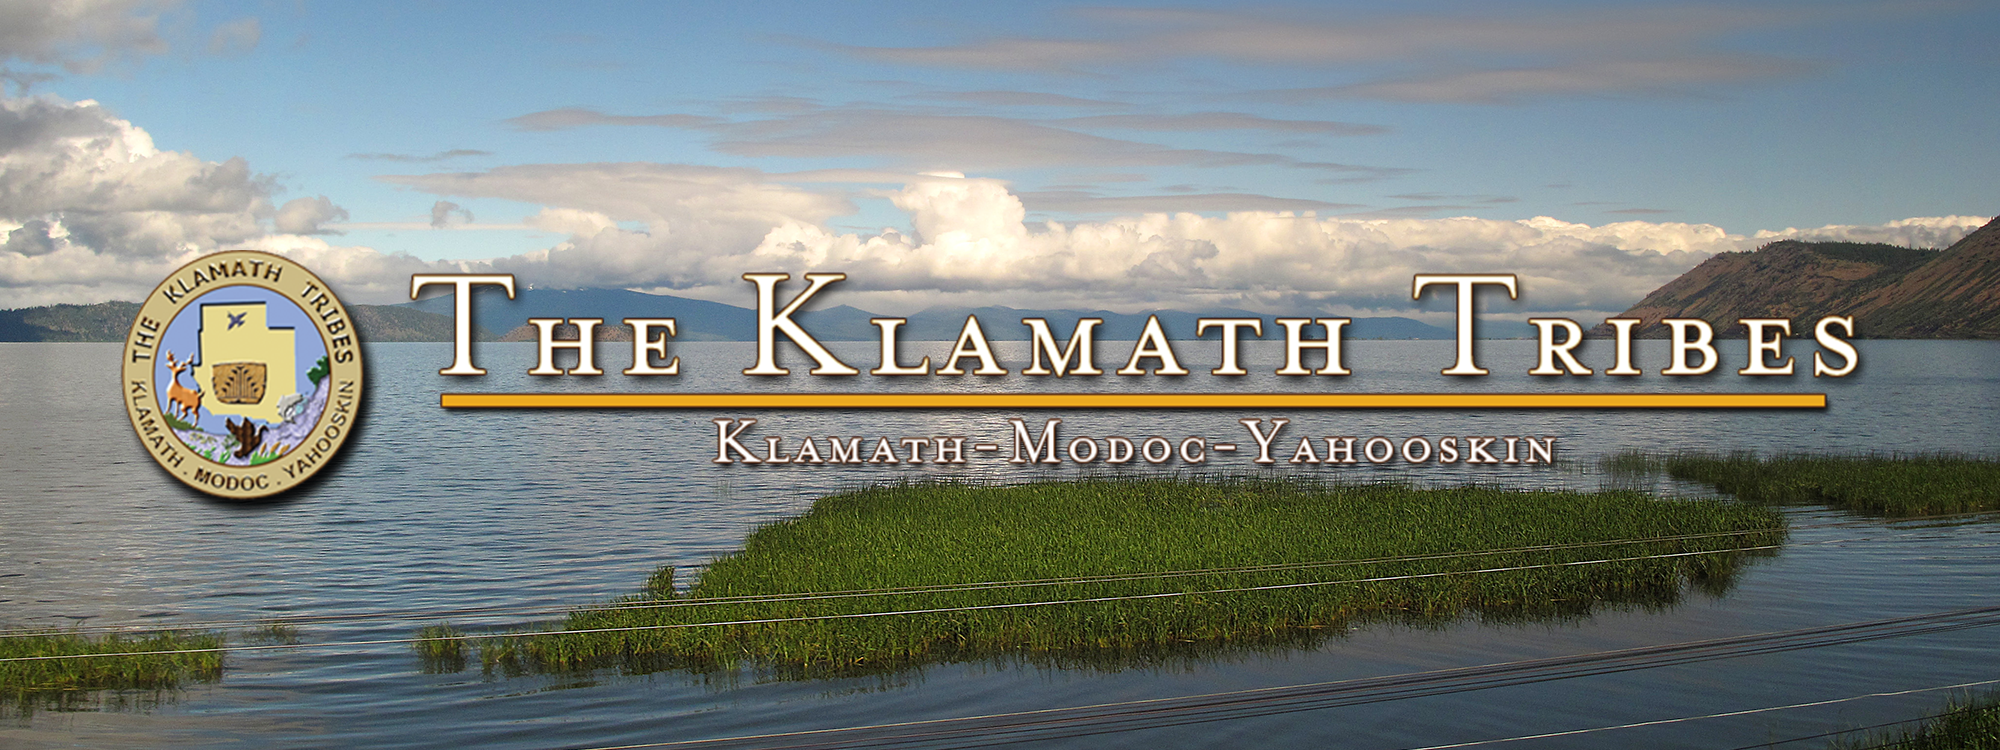 The Klamath Tribes Seal and logo